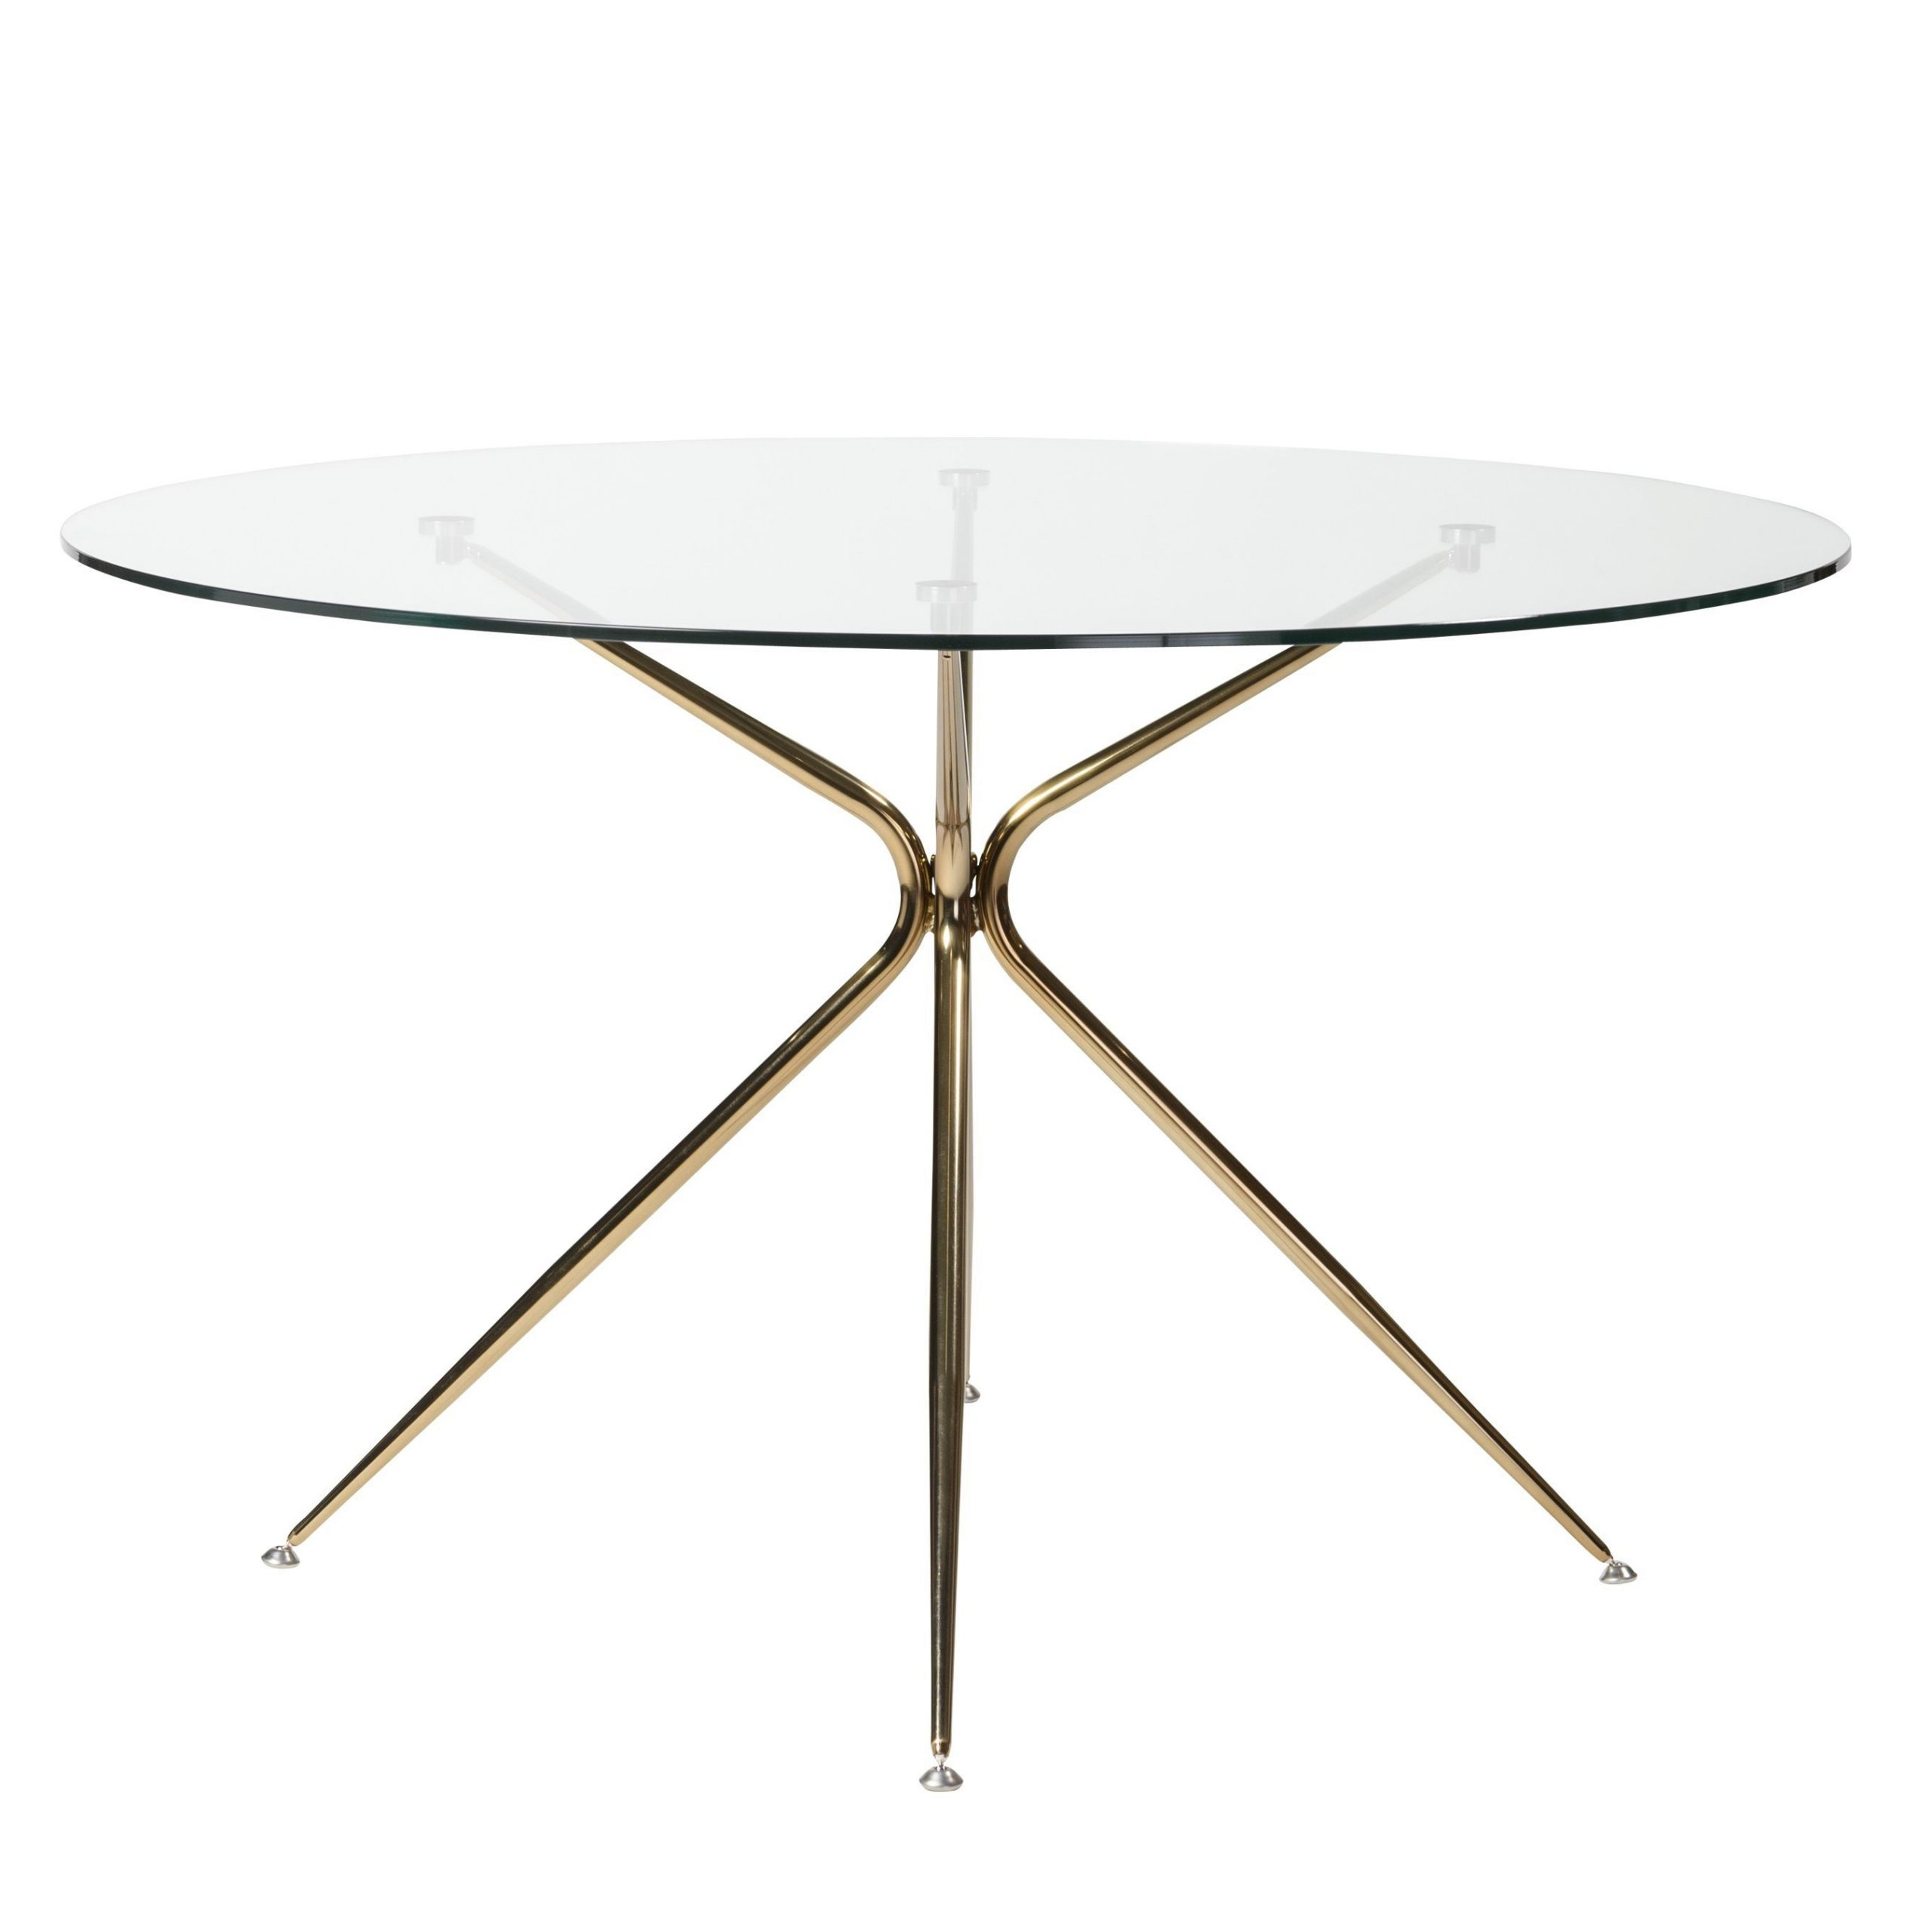 Newest Modern Gold Dining Tables With Clear Glass For Atos 48 Inch Round Dining Table (View 16 of 30)